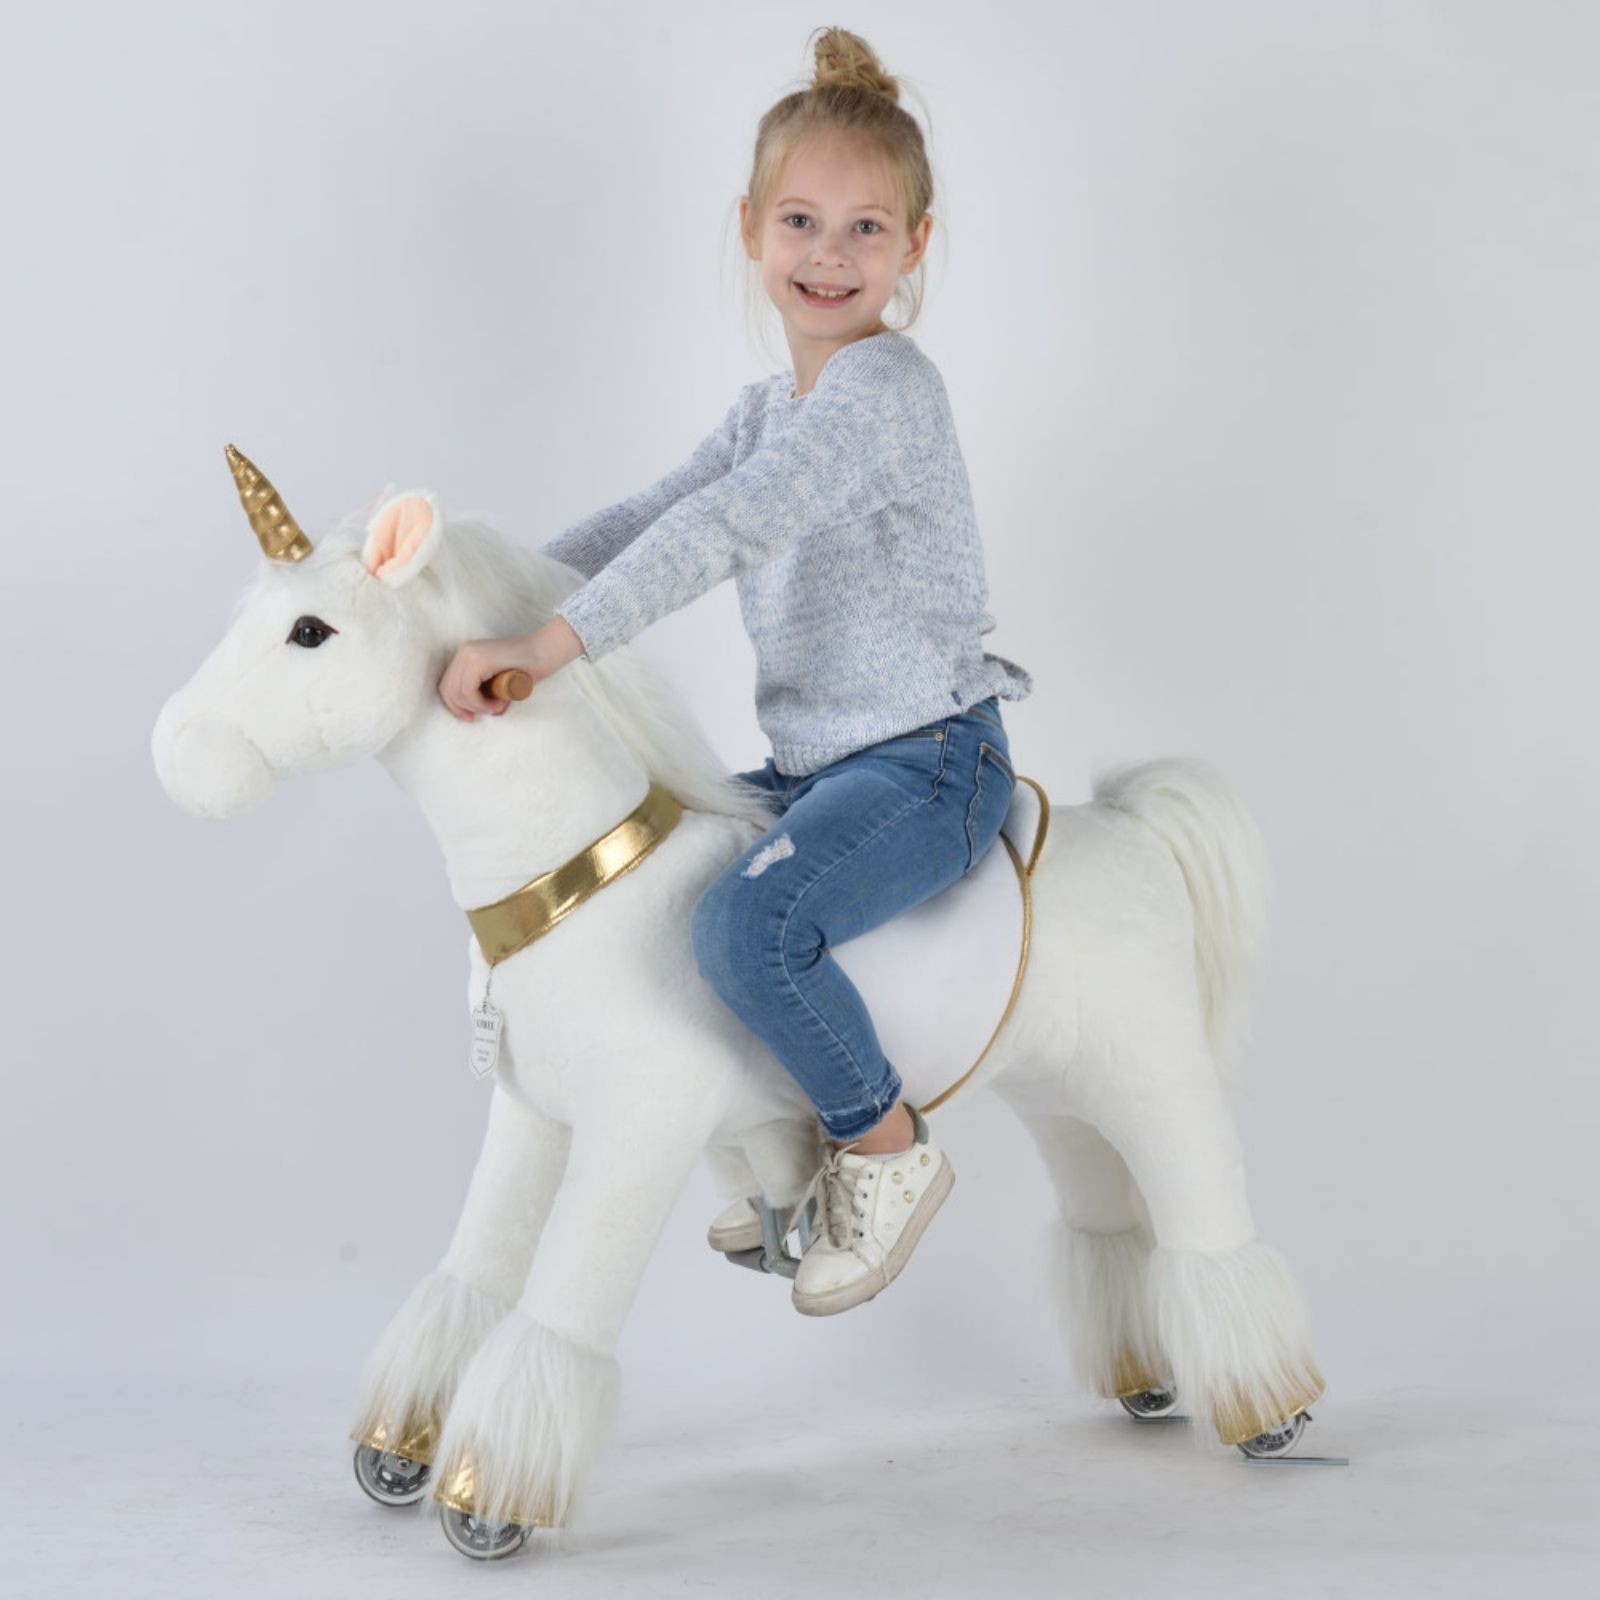 UFREE Medium 36'' Ride-on Unicorn for Children 4-9 Years Old. (White Unicorn with Golden Horn)